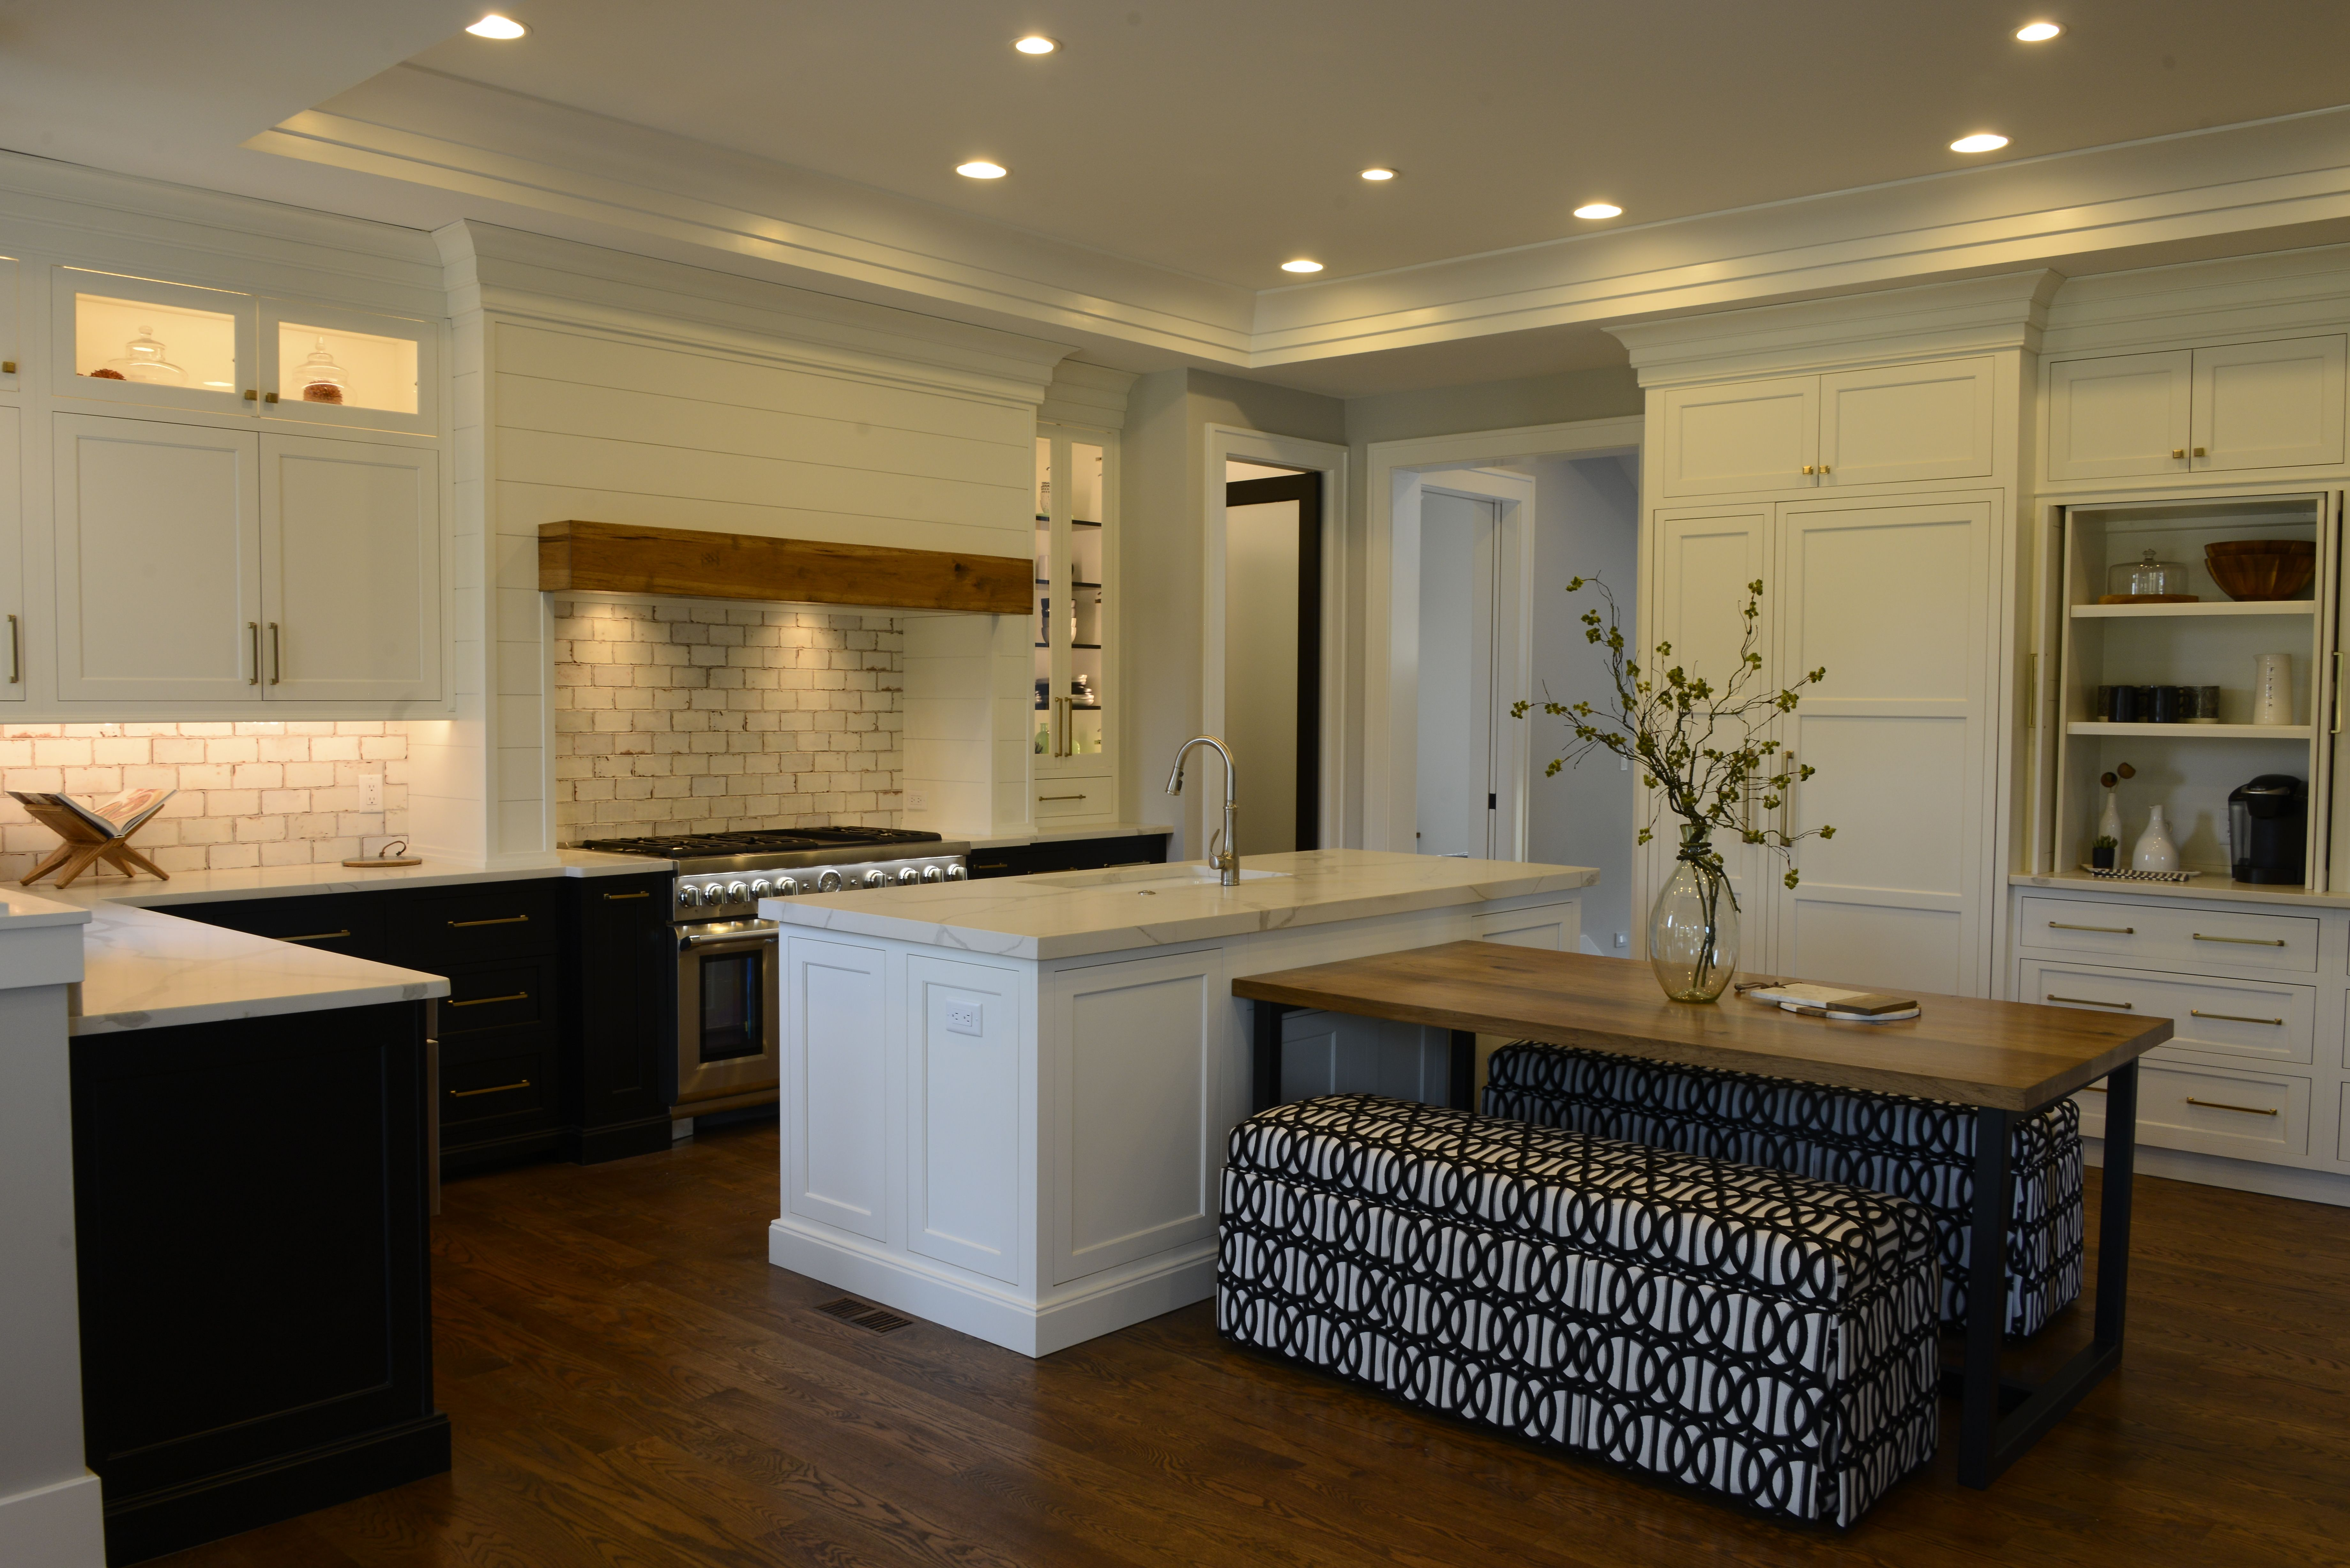 Homerama Kitchen countertops in Cincinnati, OH | More of Our